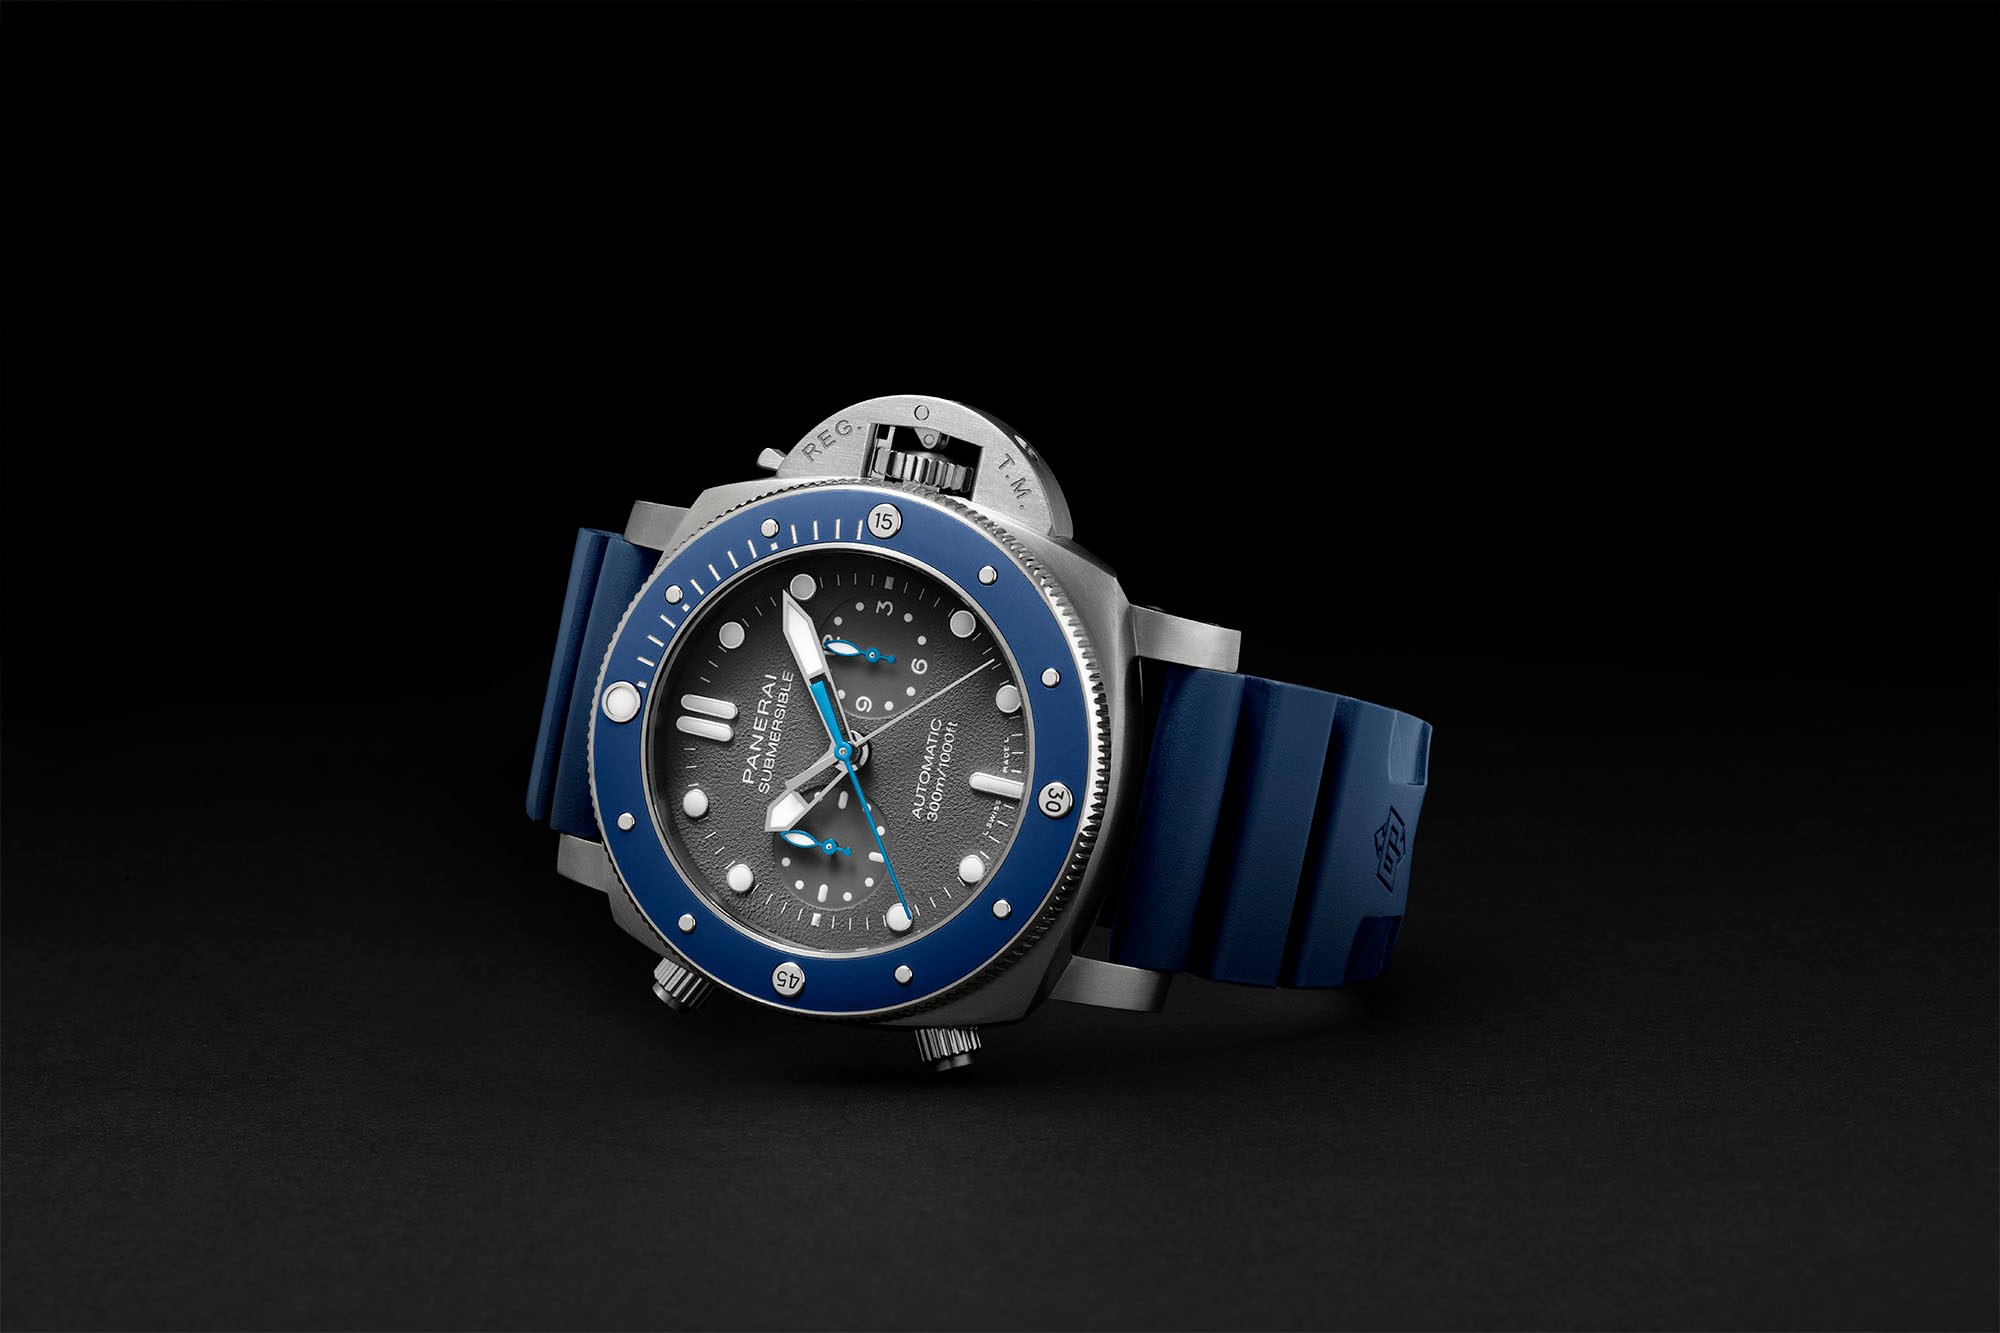 Panerai Submersible Nery Edition